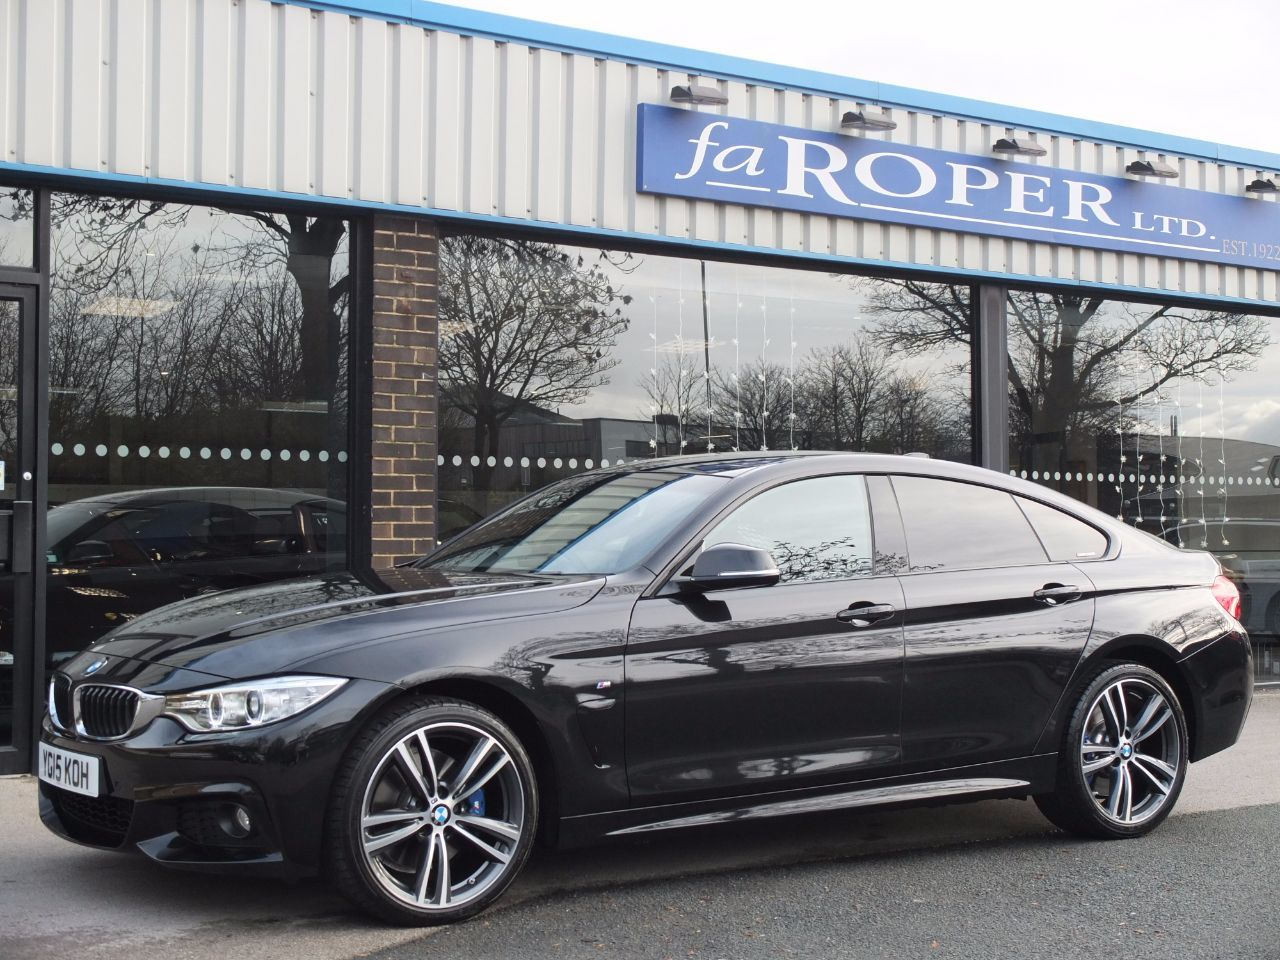 Bmw 4 Series Black Sapphire Www Pixshark Com Images Galleries With A Bite